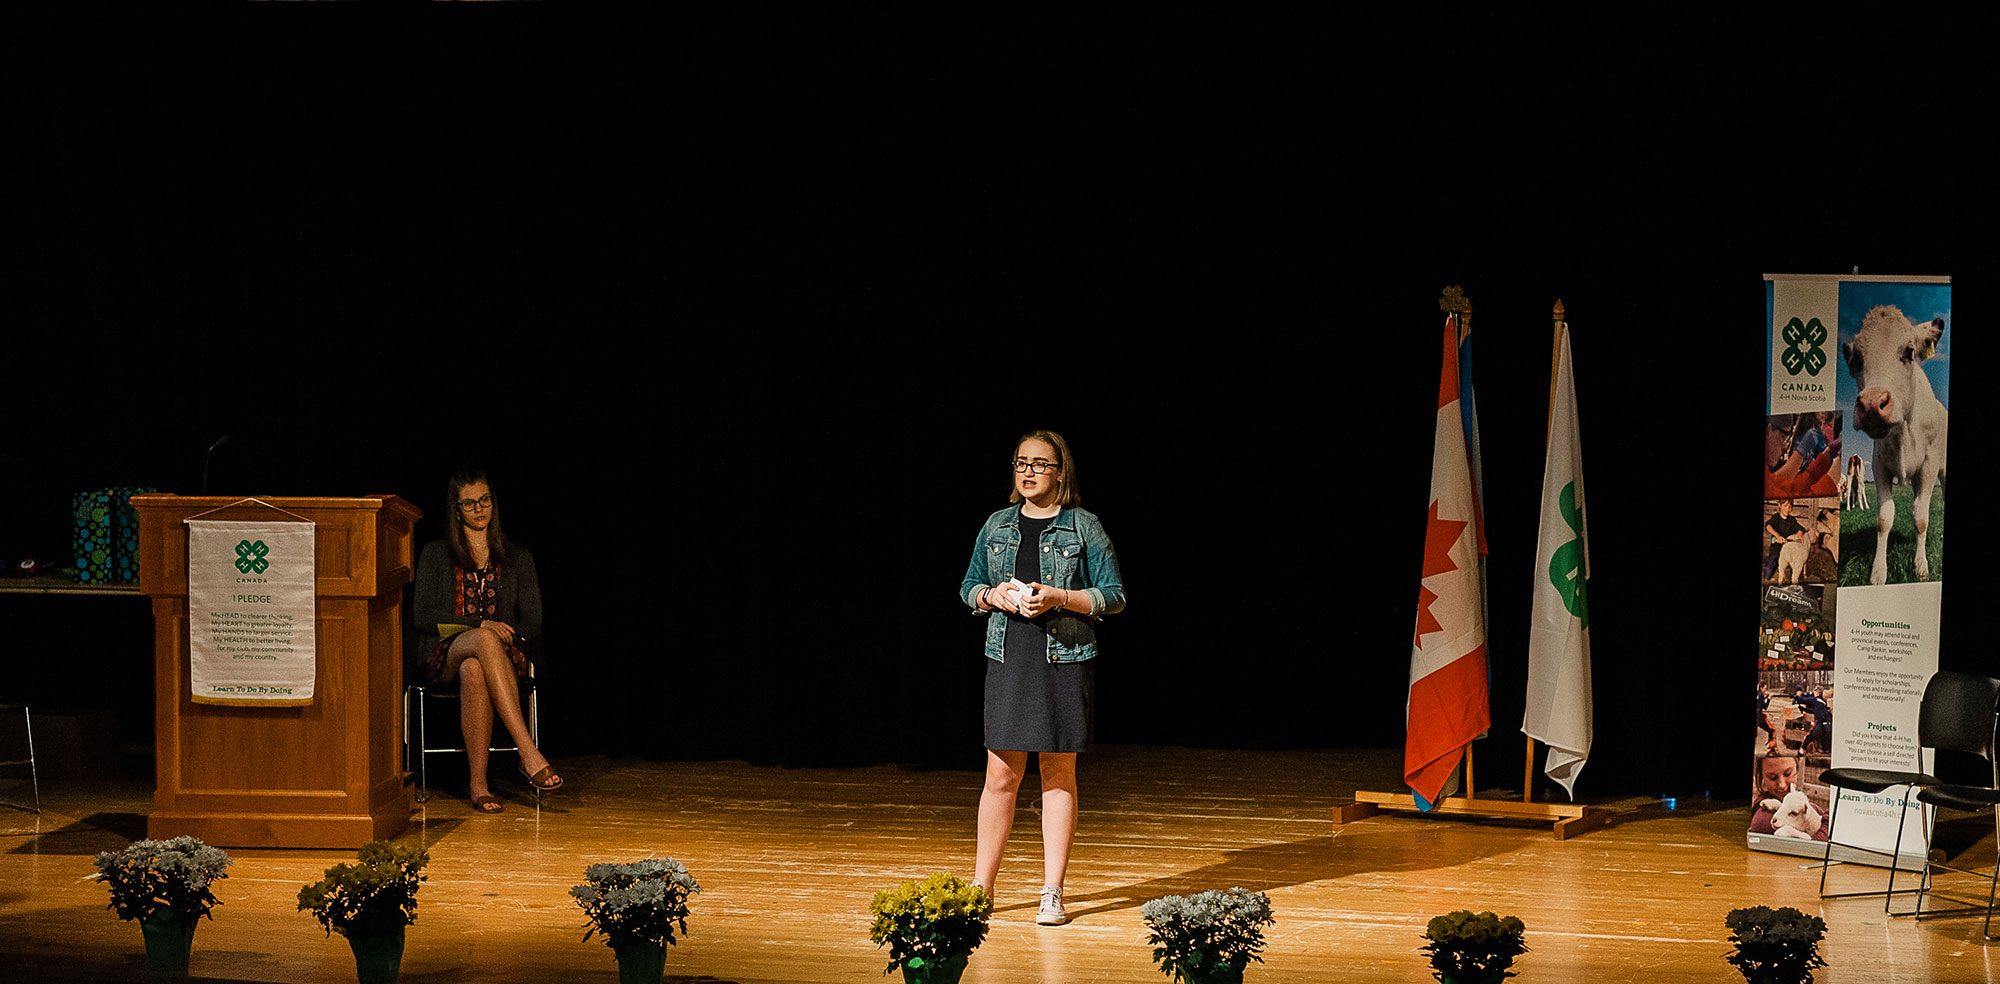 Girl on stage doing public speaking presentation